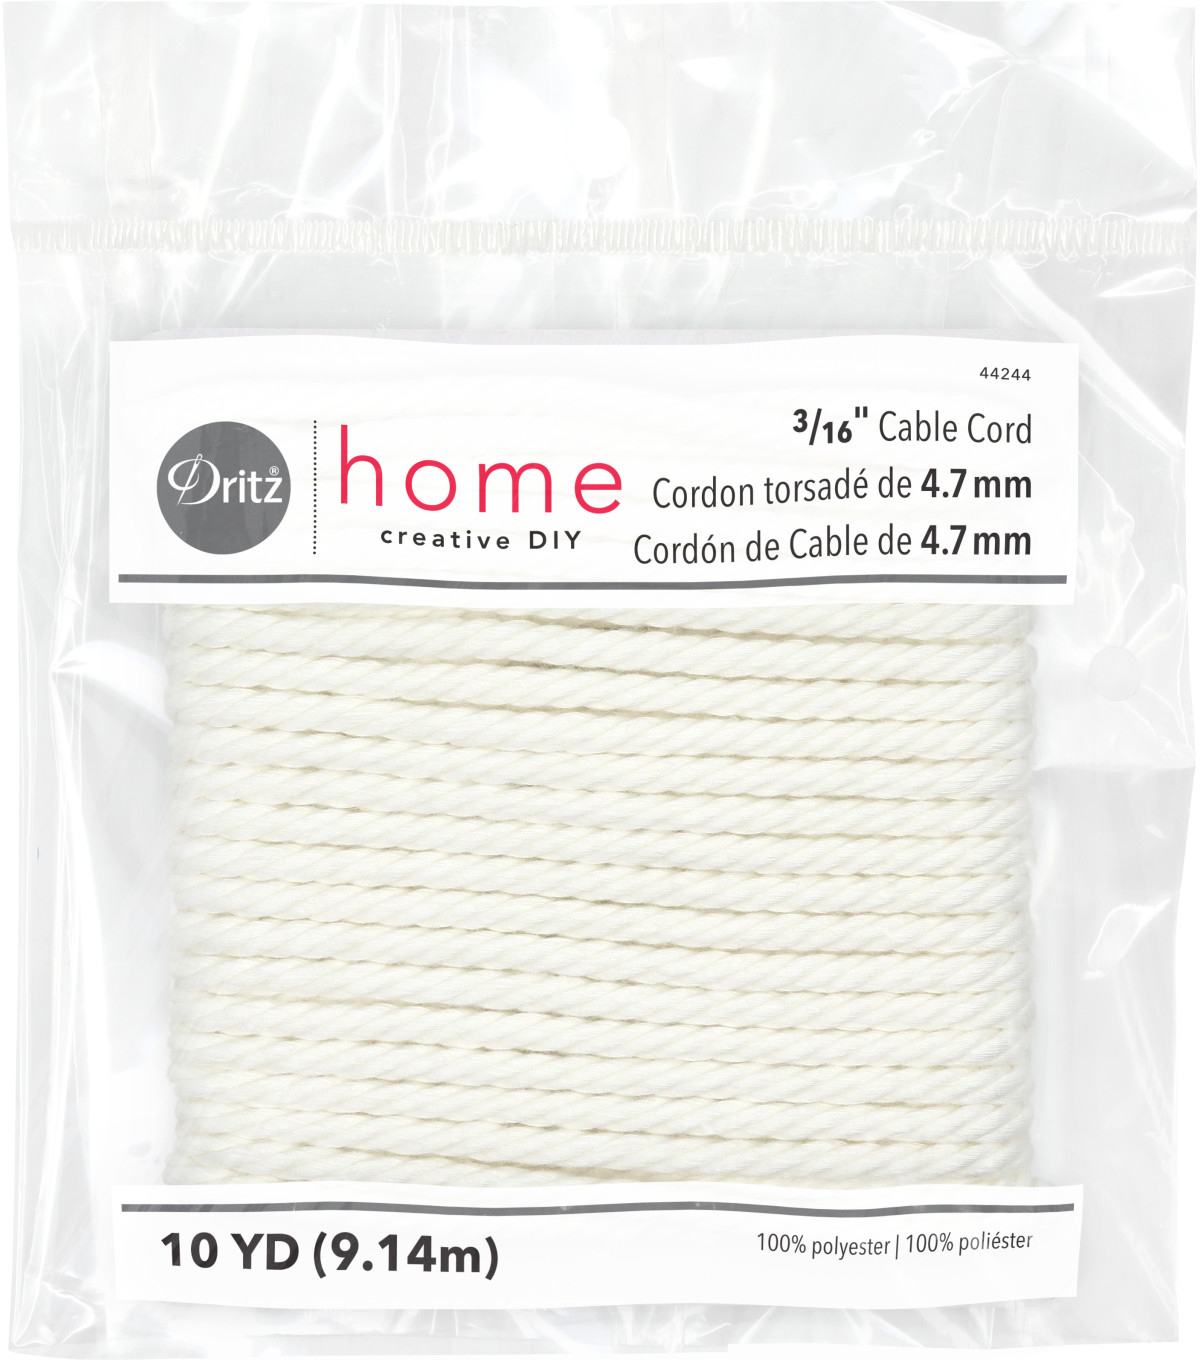 Dritz Home 0.19\u0022 x 10Yds Cable Cord White